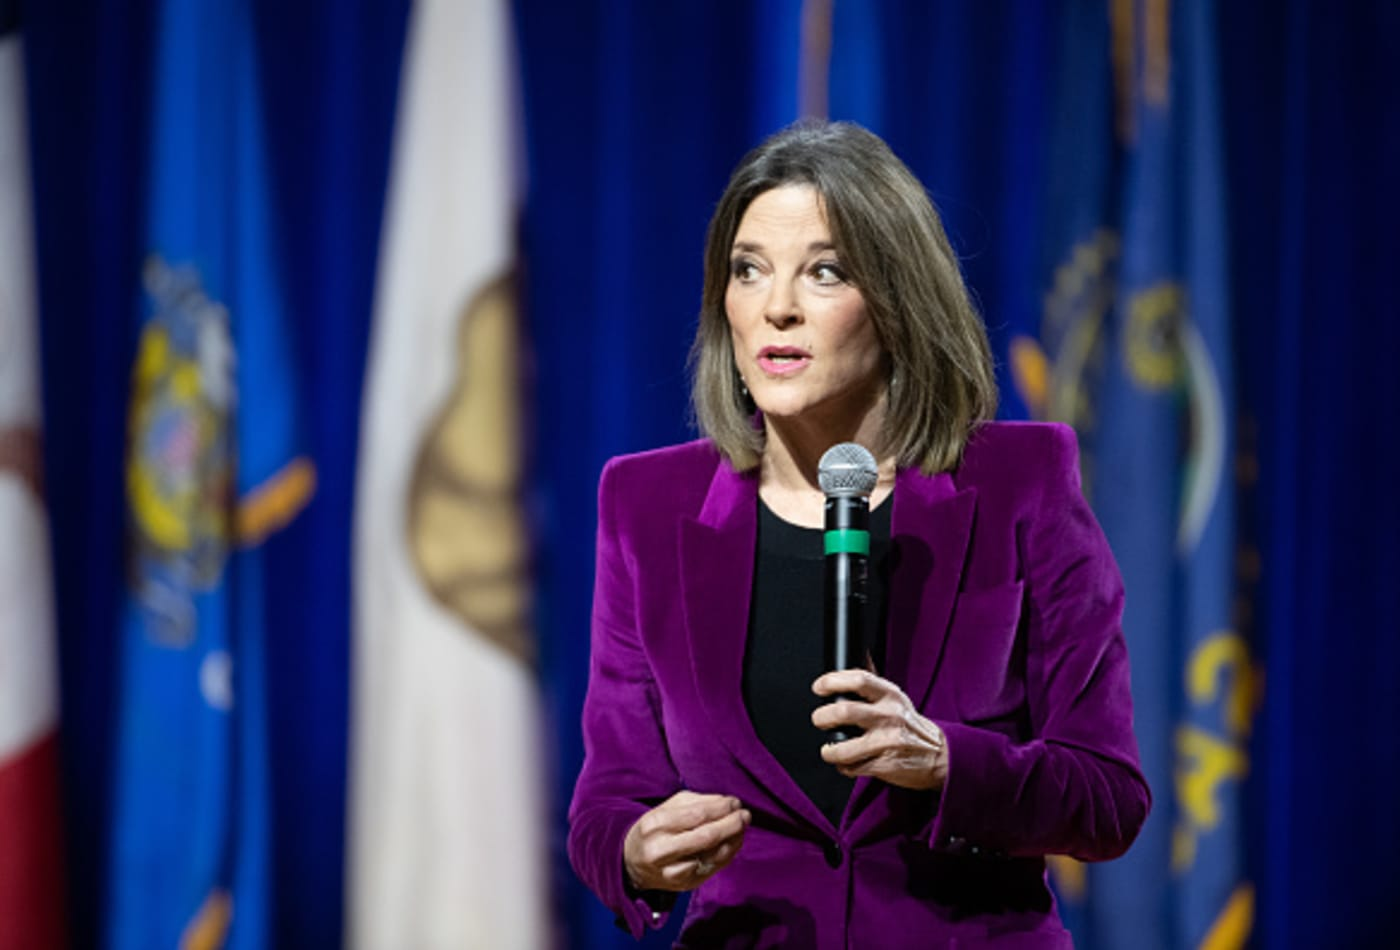 Author and self-help guru Marianne Williamson is out of the 2020 presidential race